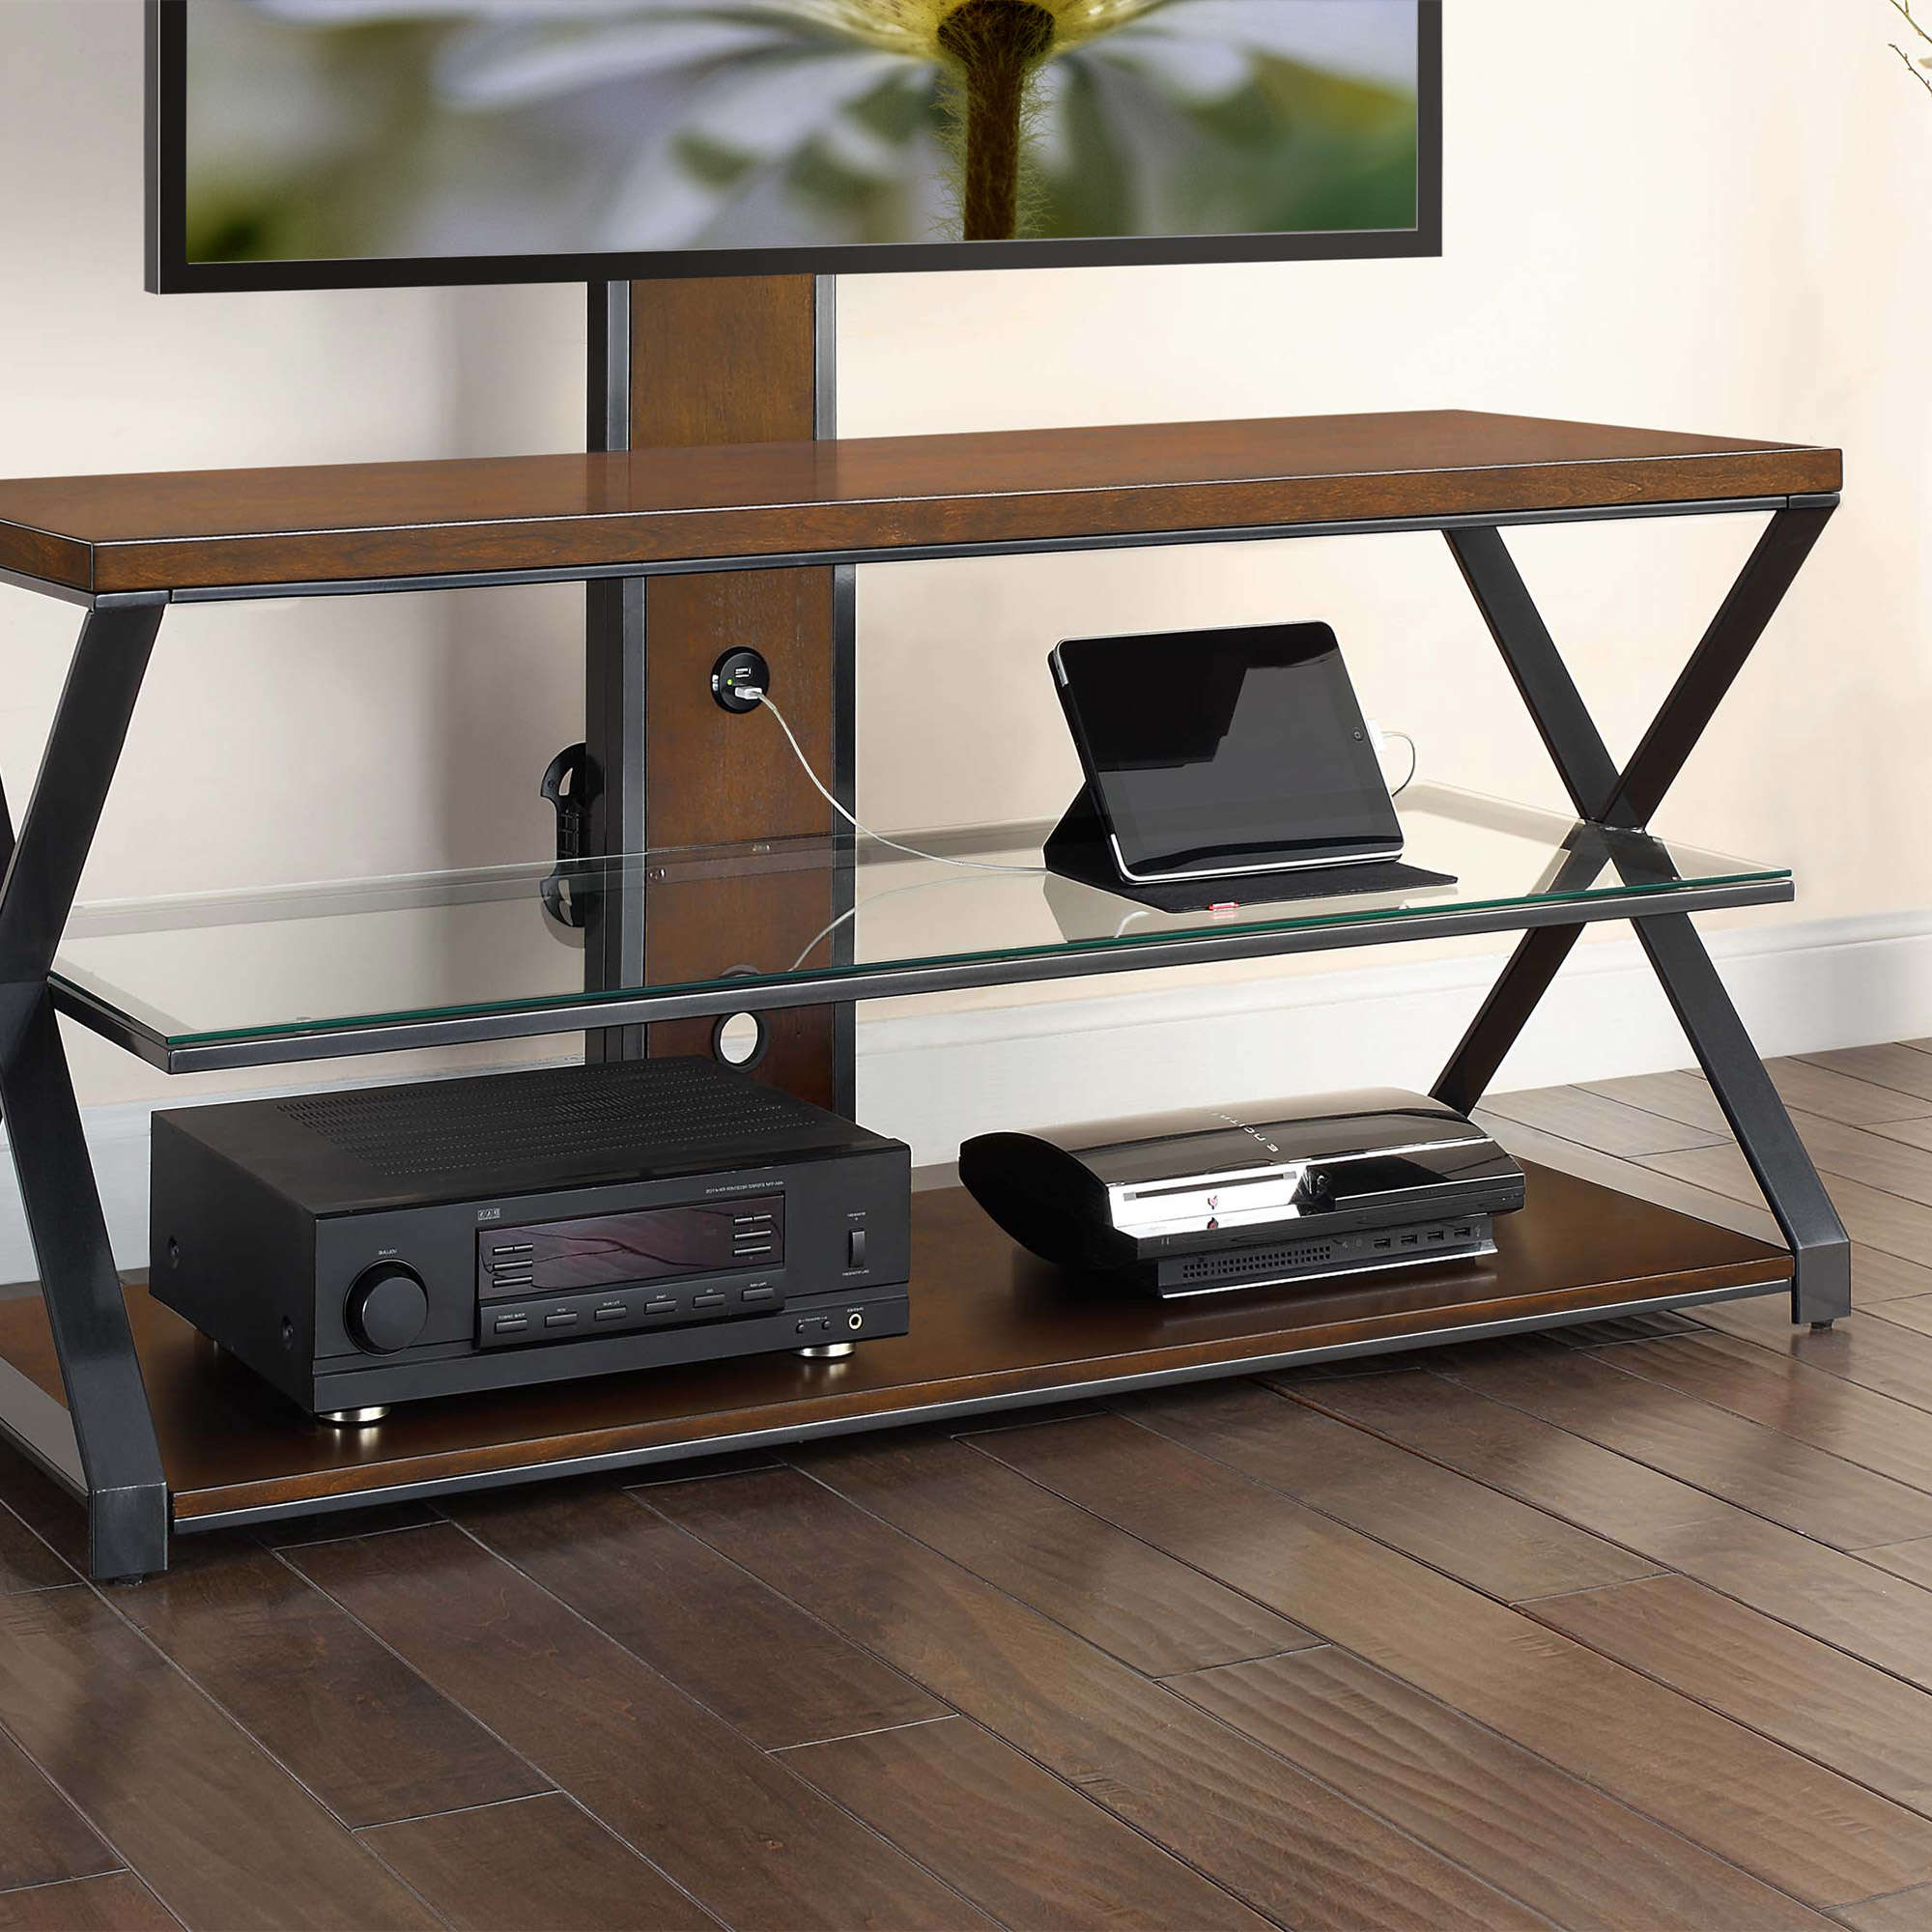 "Jaxon 3 In 1 Cognac Tv Stand For Tvs Up To 70"" – Walmart For Jaxon 71 Inch Tv Stands (View 1 of 20)"